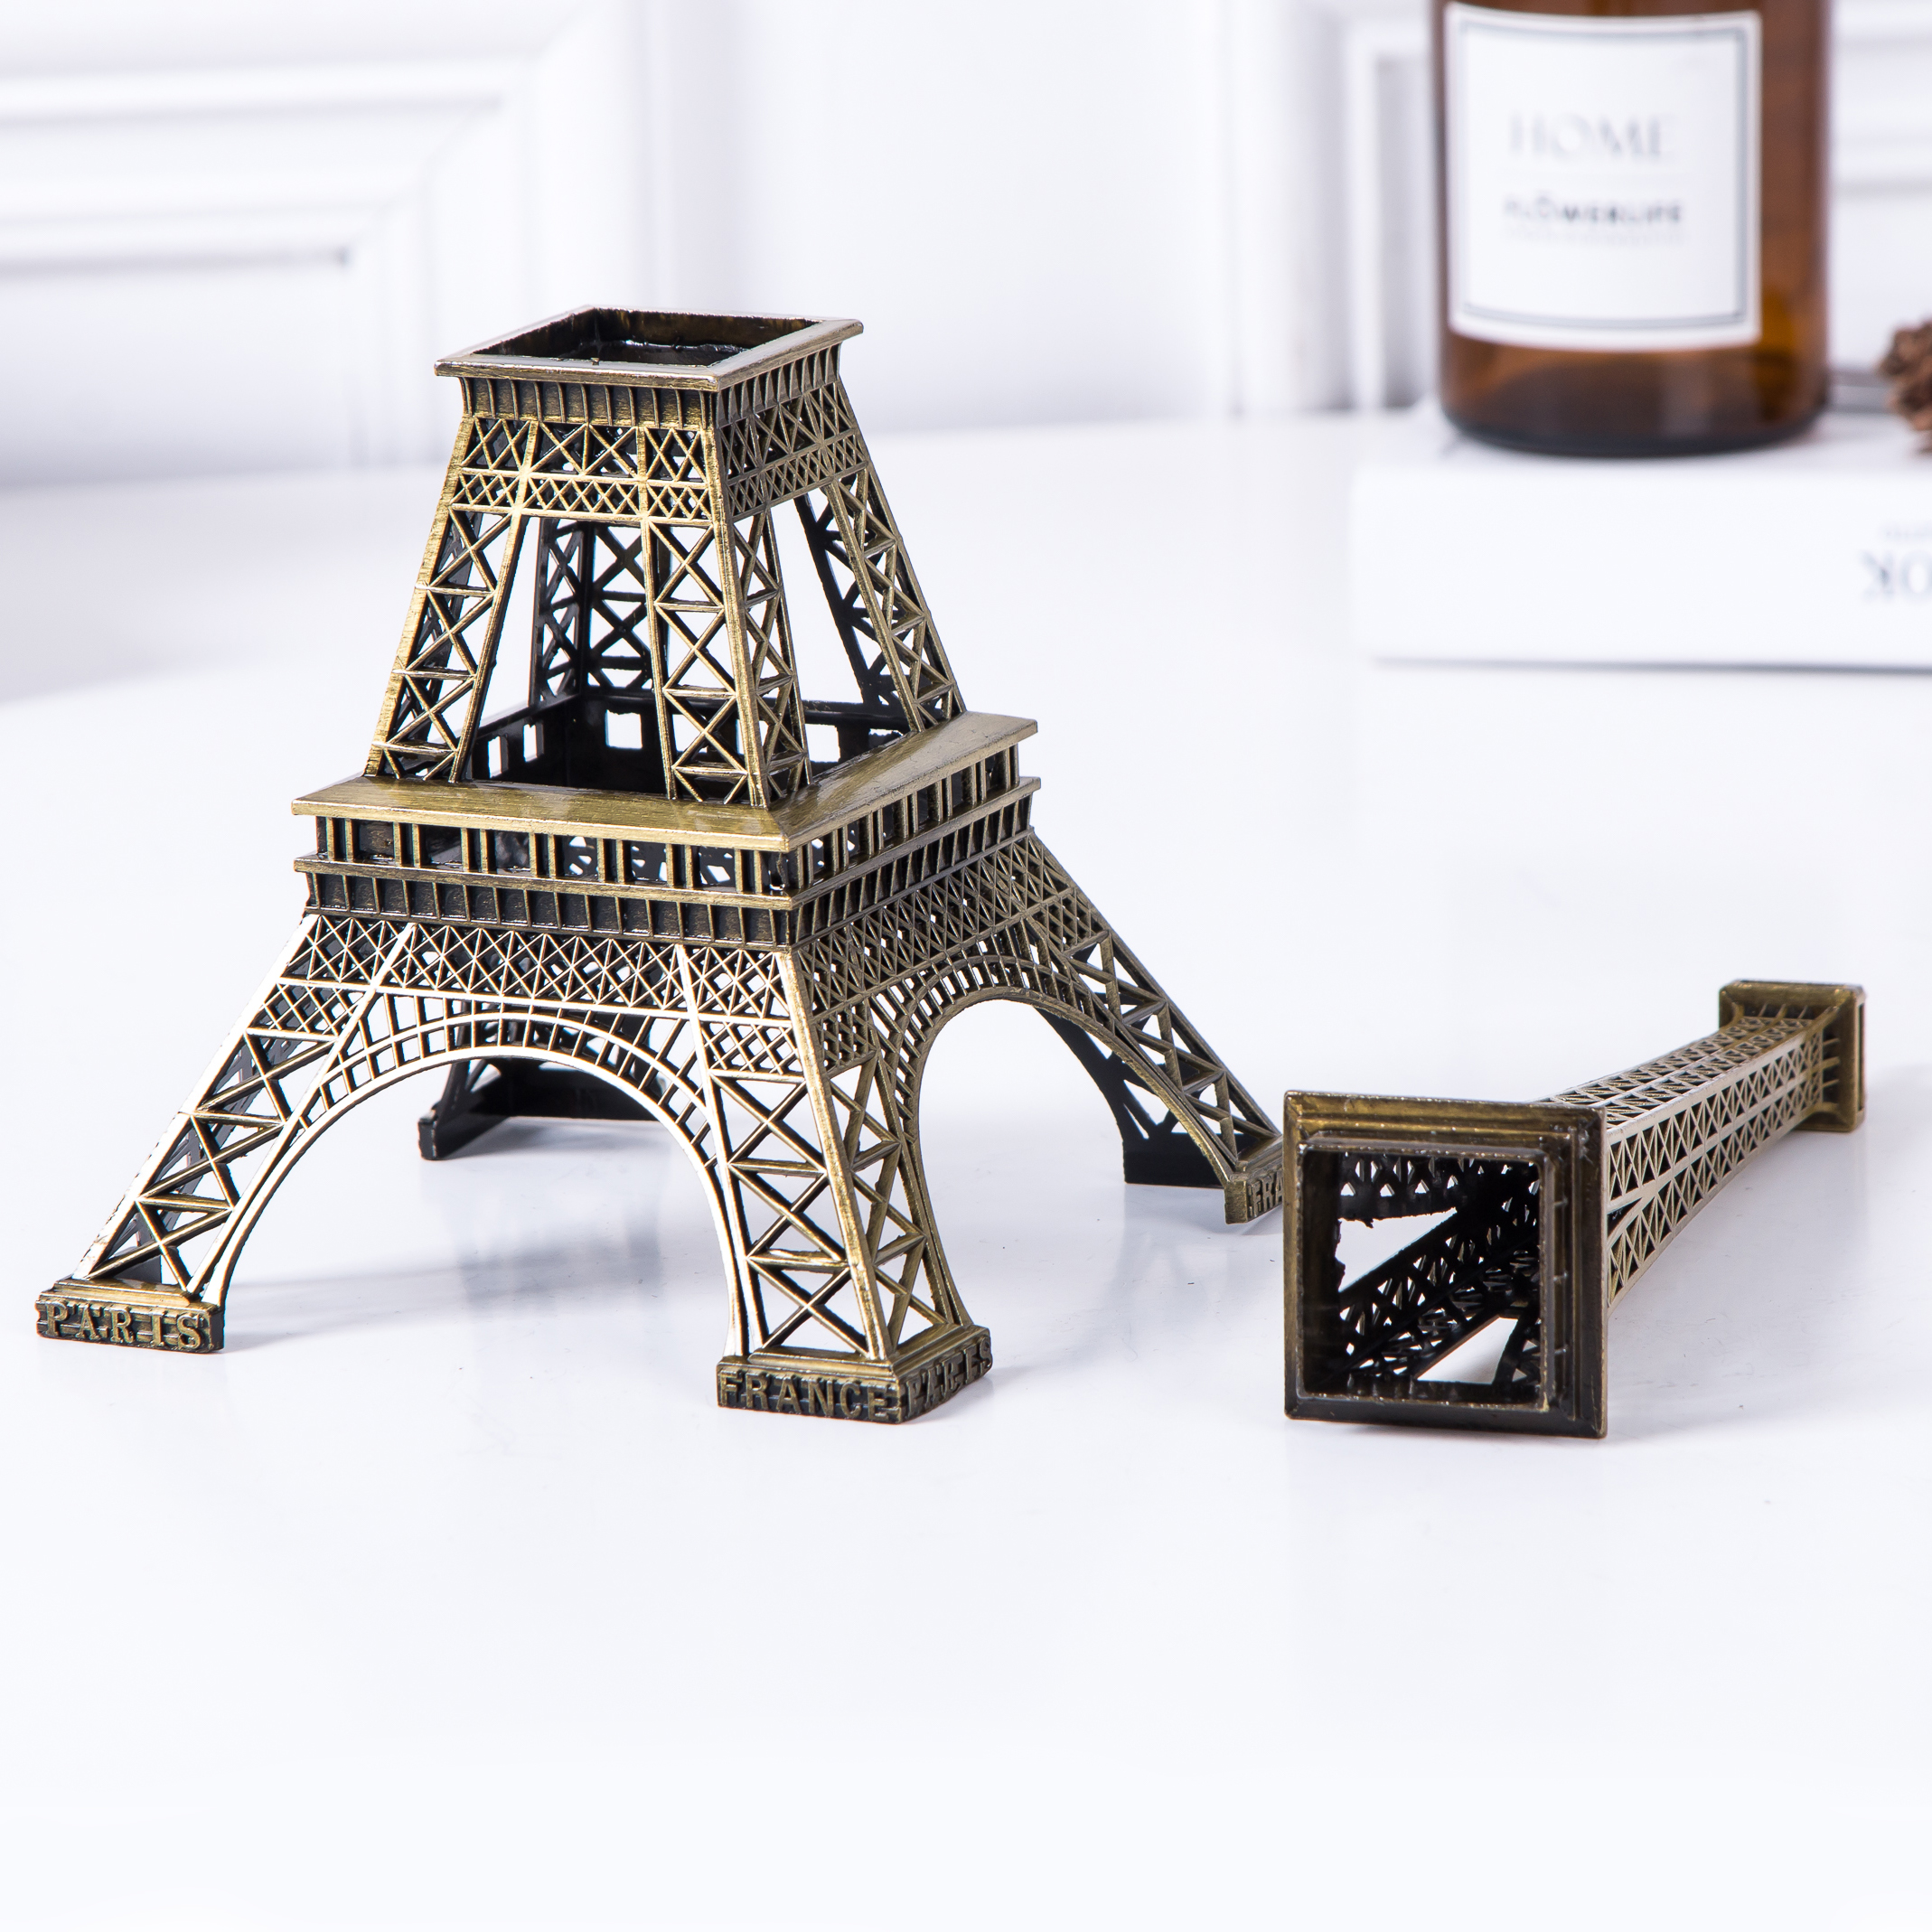 70CM Bronze Eiffel Tower Model Home Decor Vintage Metal Craft Cake Topper Wedding Activities Decoration